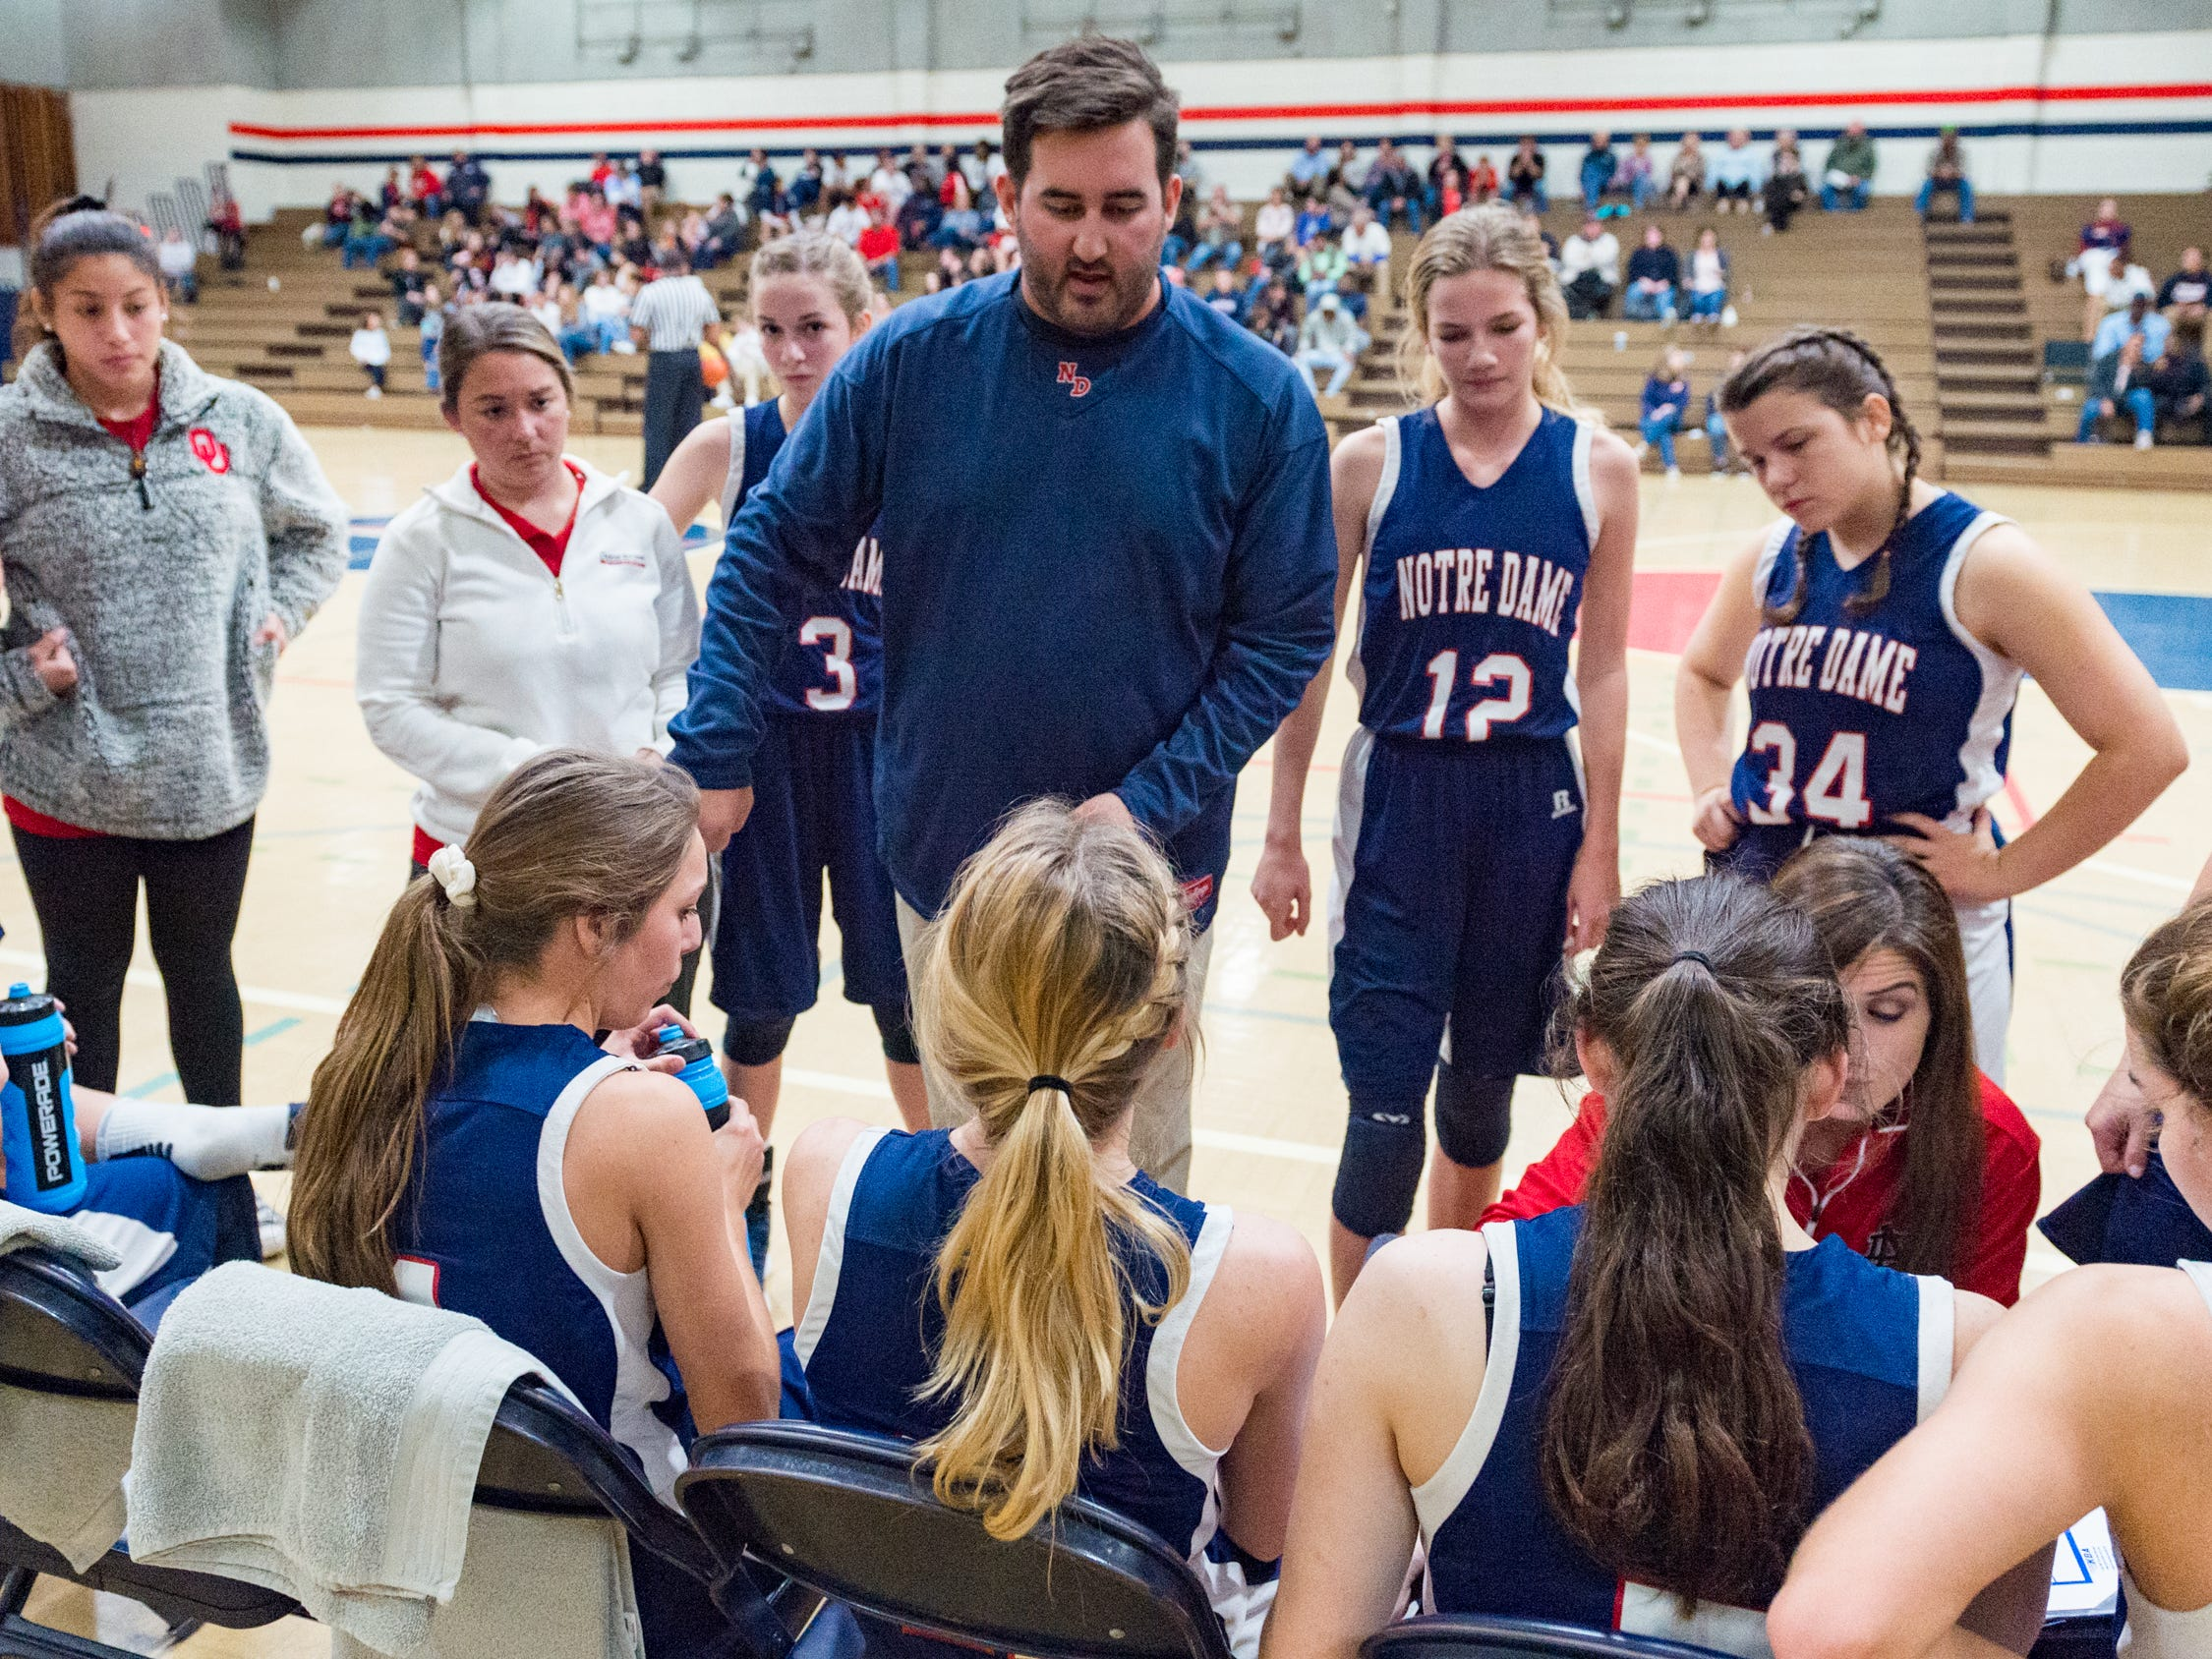 Pios Head Coach Tim Miguez talks to his team during a time out as Notre Dame and North Vermillion face off in Girls Basketball Tournament at North Vermillion High School. Tuesday, Nov. 20, 2018.